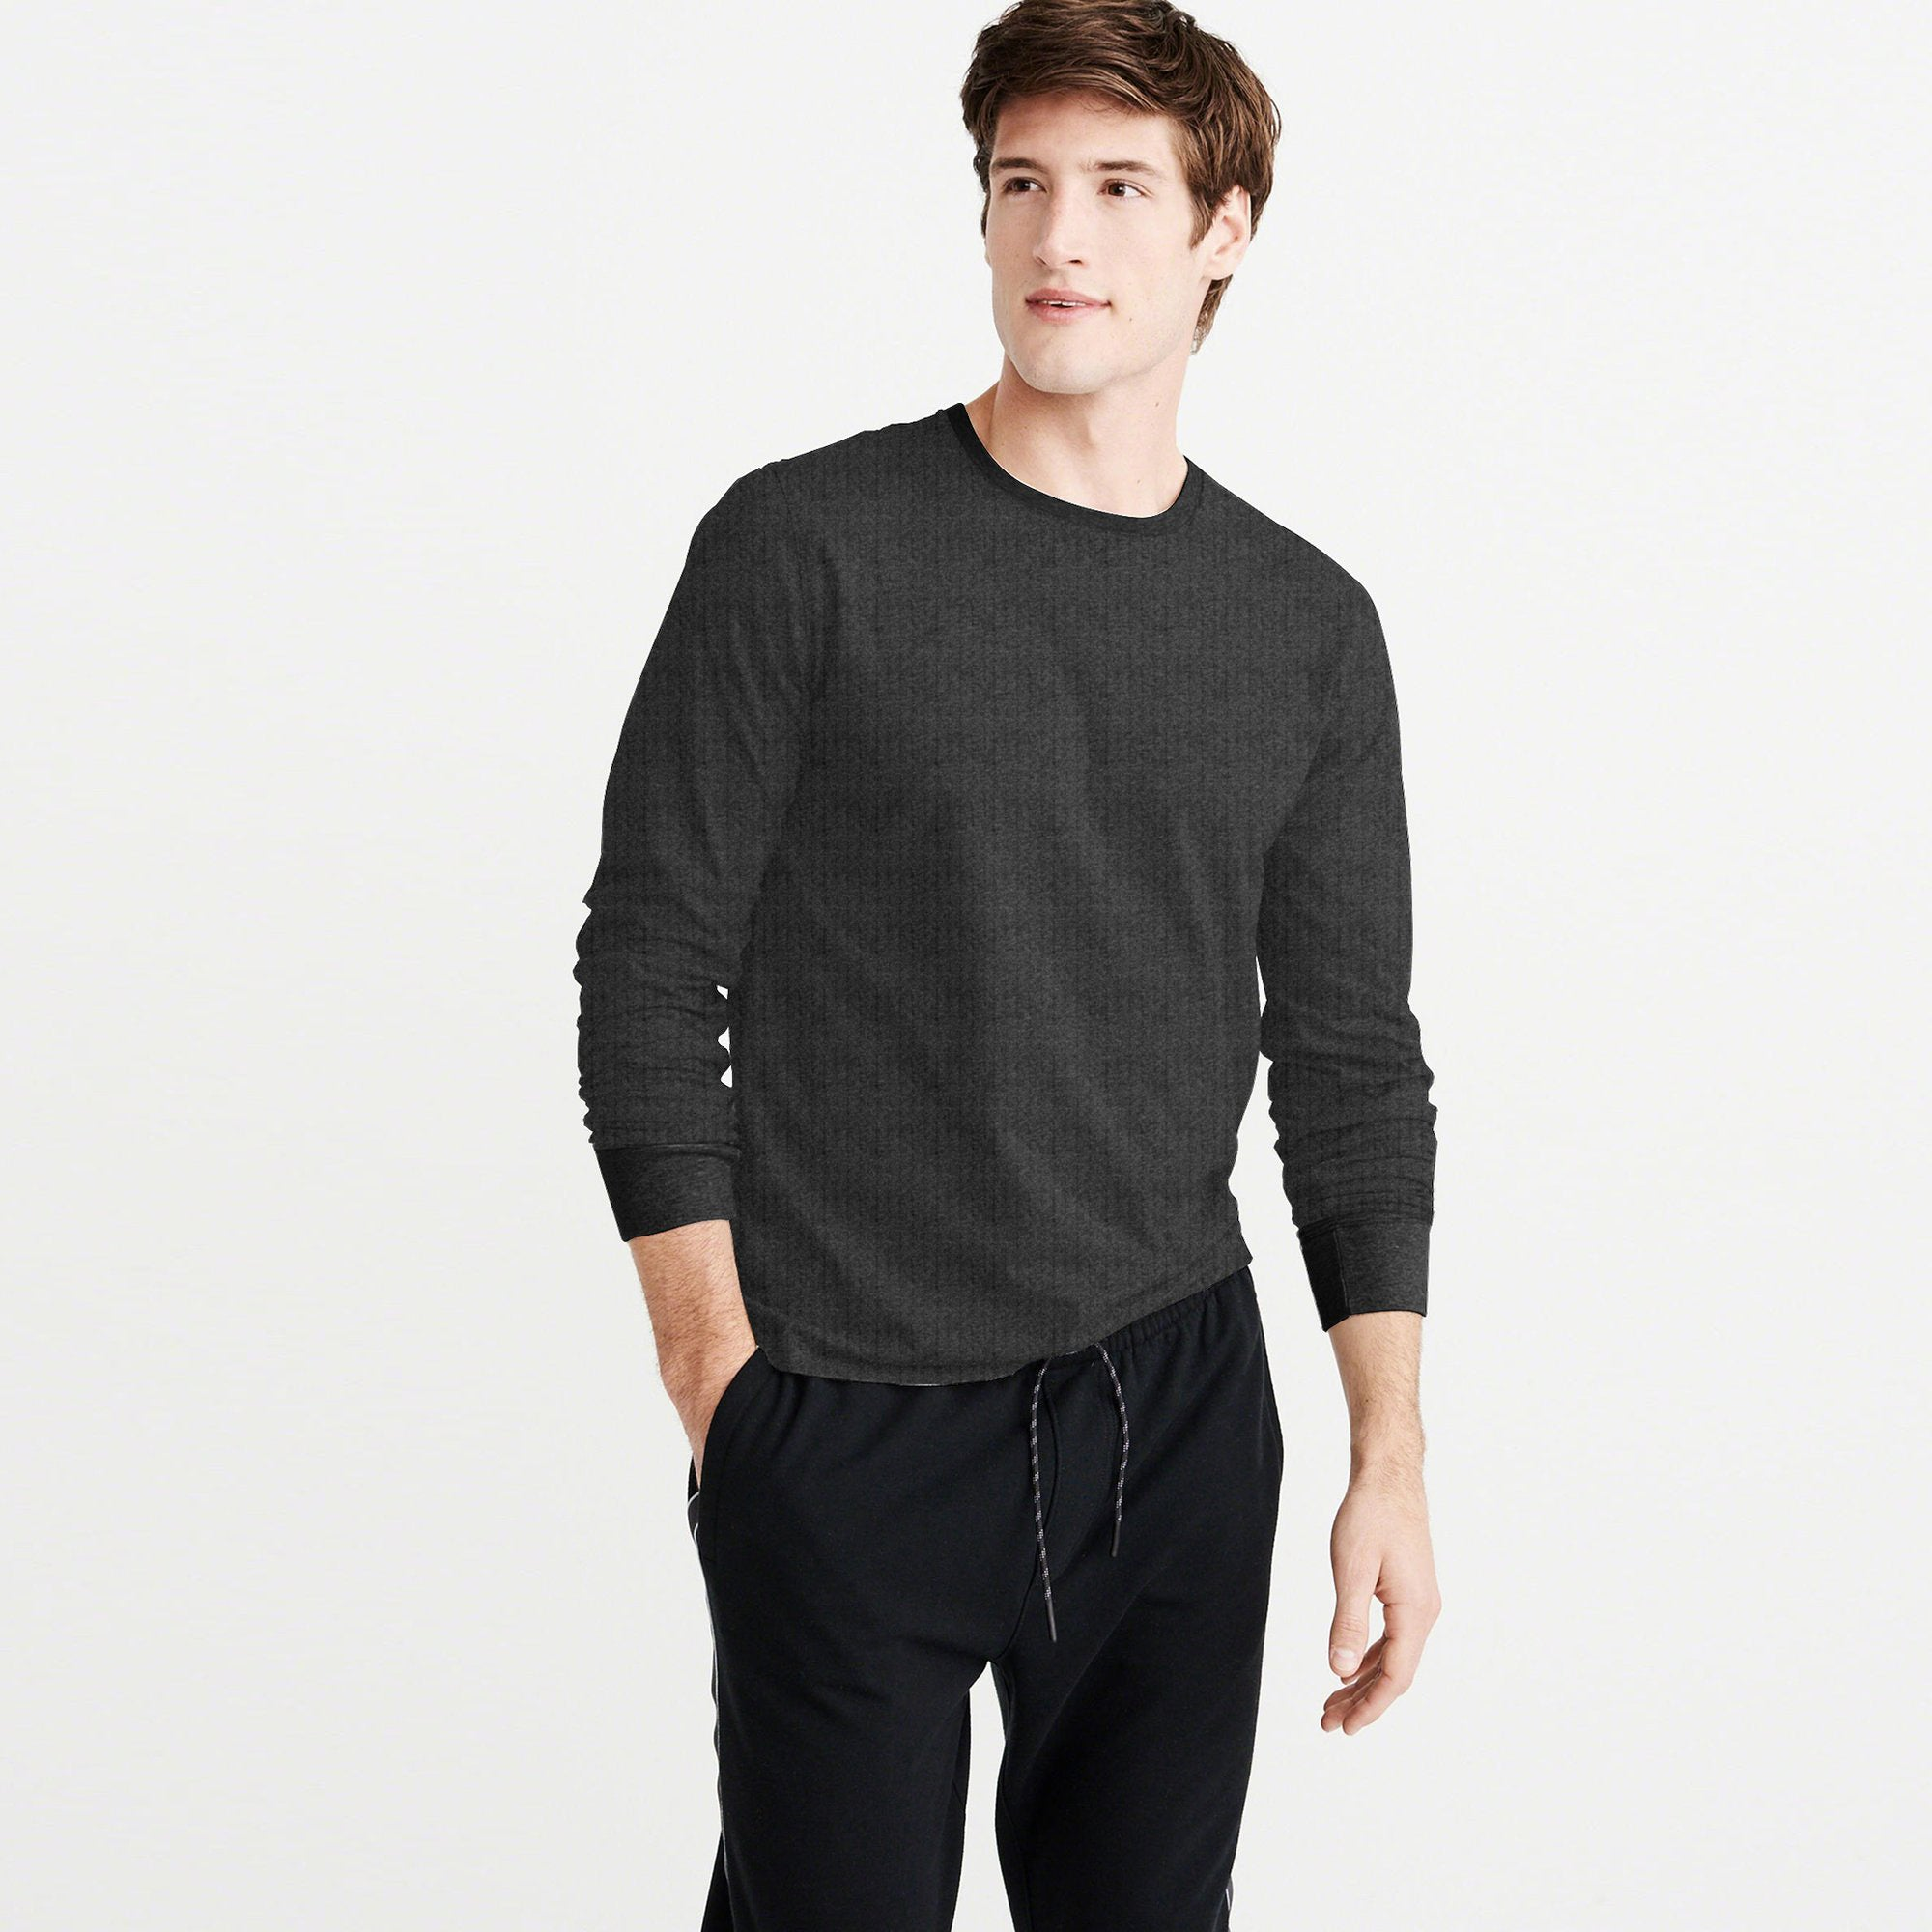 USF Thermal Long Sleeve Tee Shirt For Men-Light Charcoal-NA8044